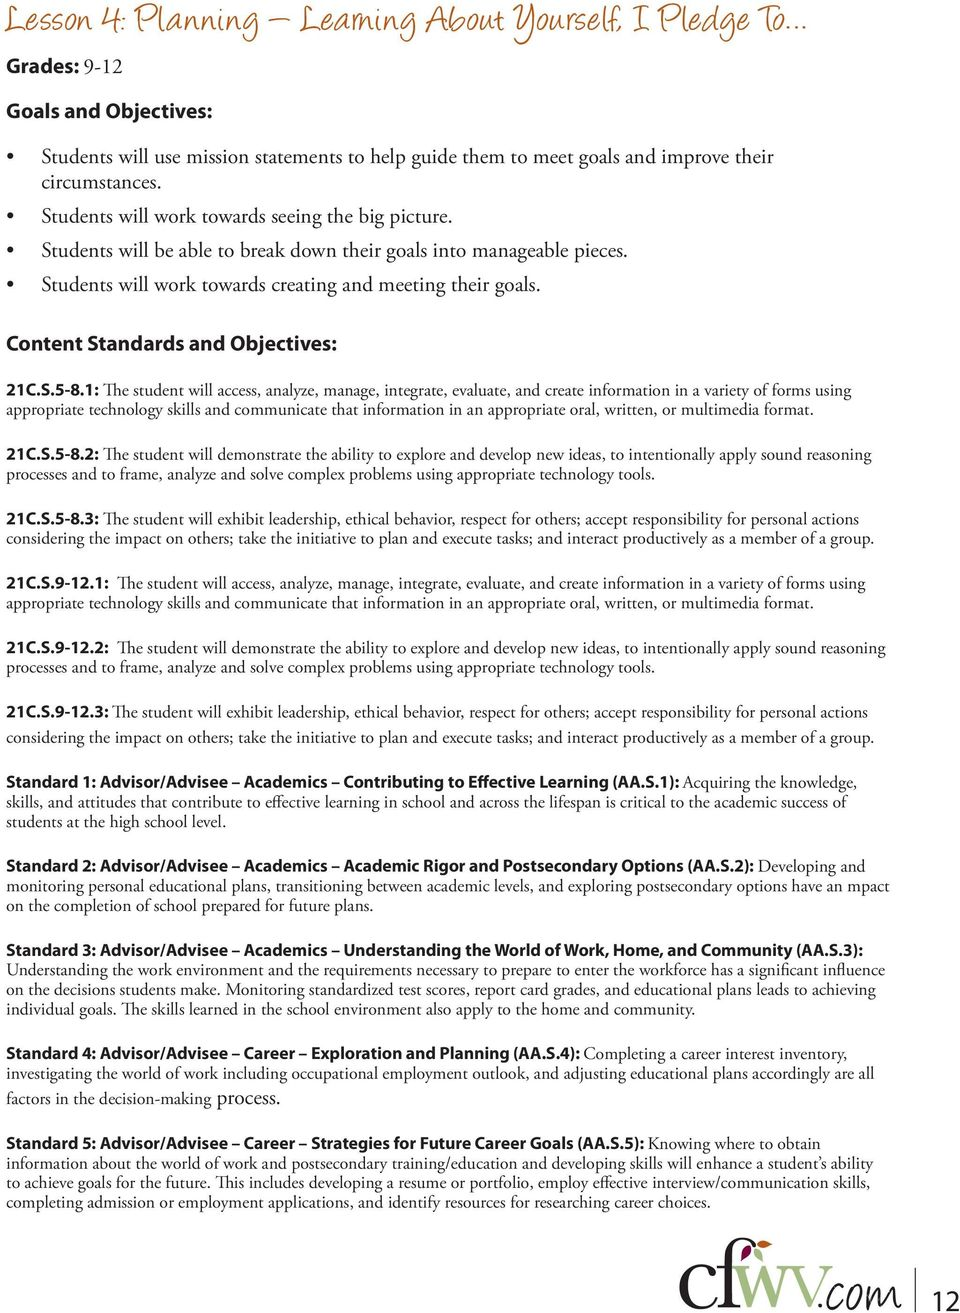 Content Standards and Objectives: 21C.S.5-8.1: The student will access, analyze, manage, integrate, evaluate, and create information in a variety of forms using 21C.S.5-8.2: The student will demonstrate the ability to explore and develop new ideas, to intentionally apply sound reasoning 21C.